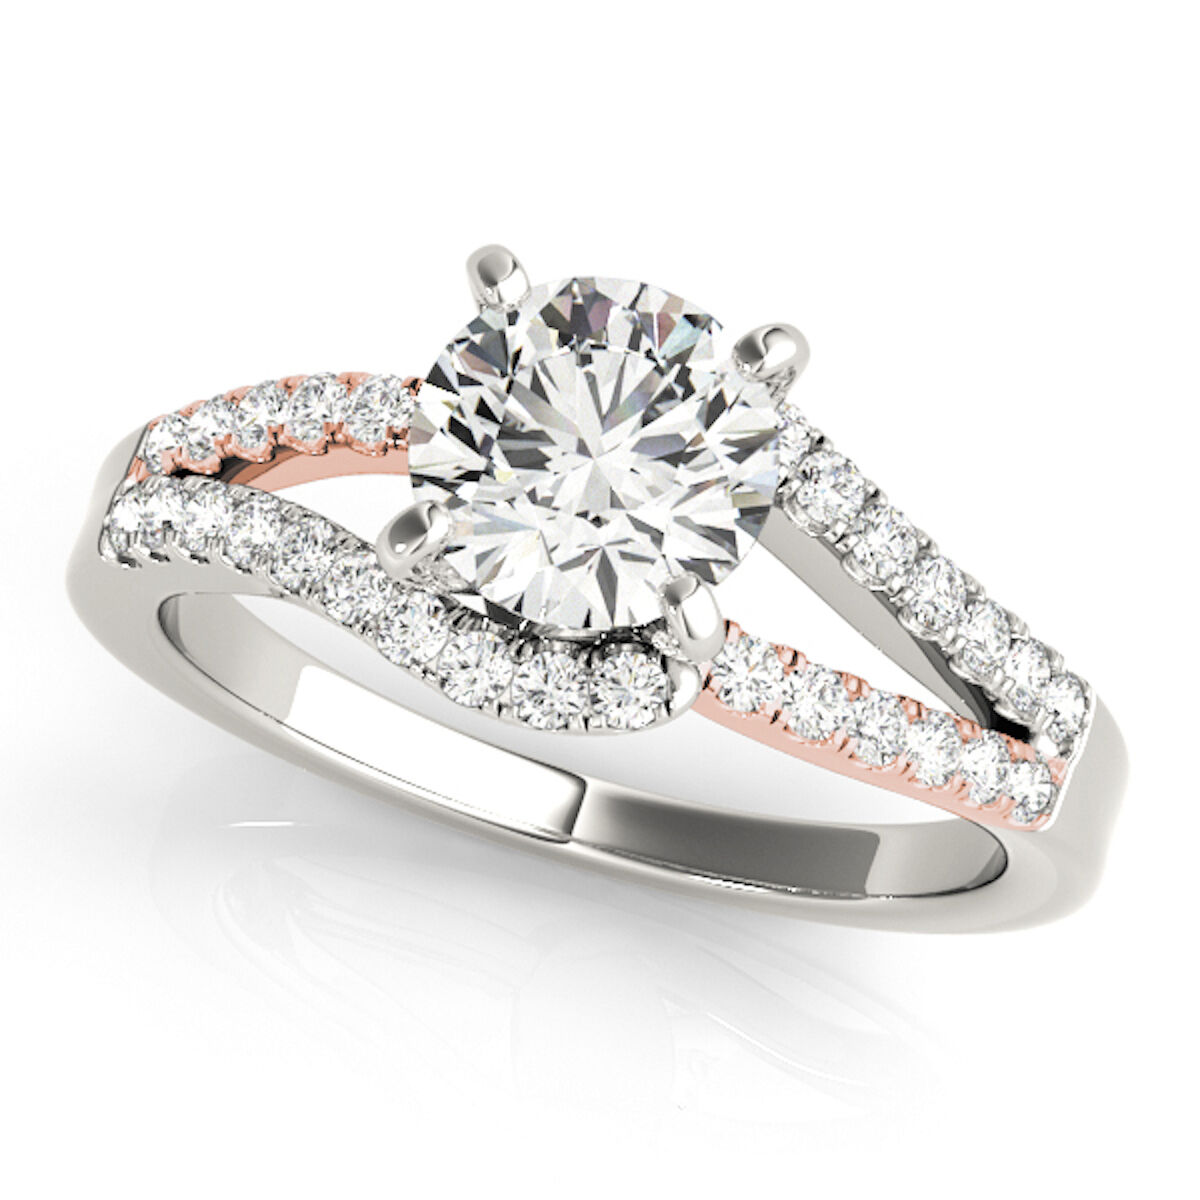 0.75 Carat Halo Two-Tone Diamond Engagement Ring In 14k  pink and White gold